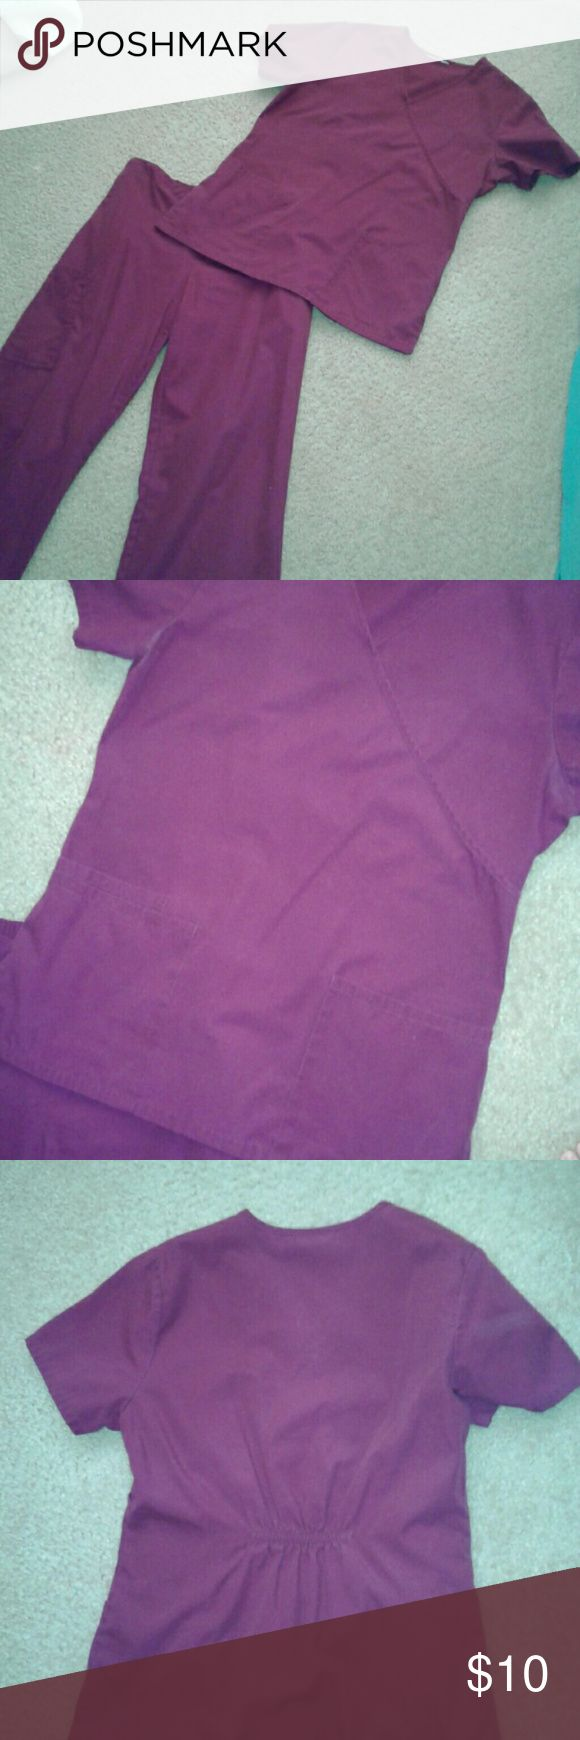 Maroon/wine scrubs Beautiful maroon/wine color.  Pictures look purple, but the color is more maroon/wine looking. Excellent used condition.  No holes or tears. Size says XS, but it fits like a small.  I'm 130 lbs and it fits me perfect. SB Scrubs Other